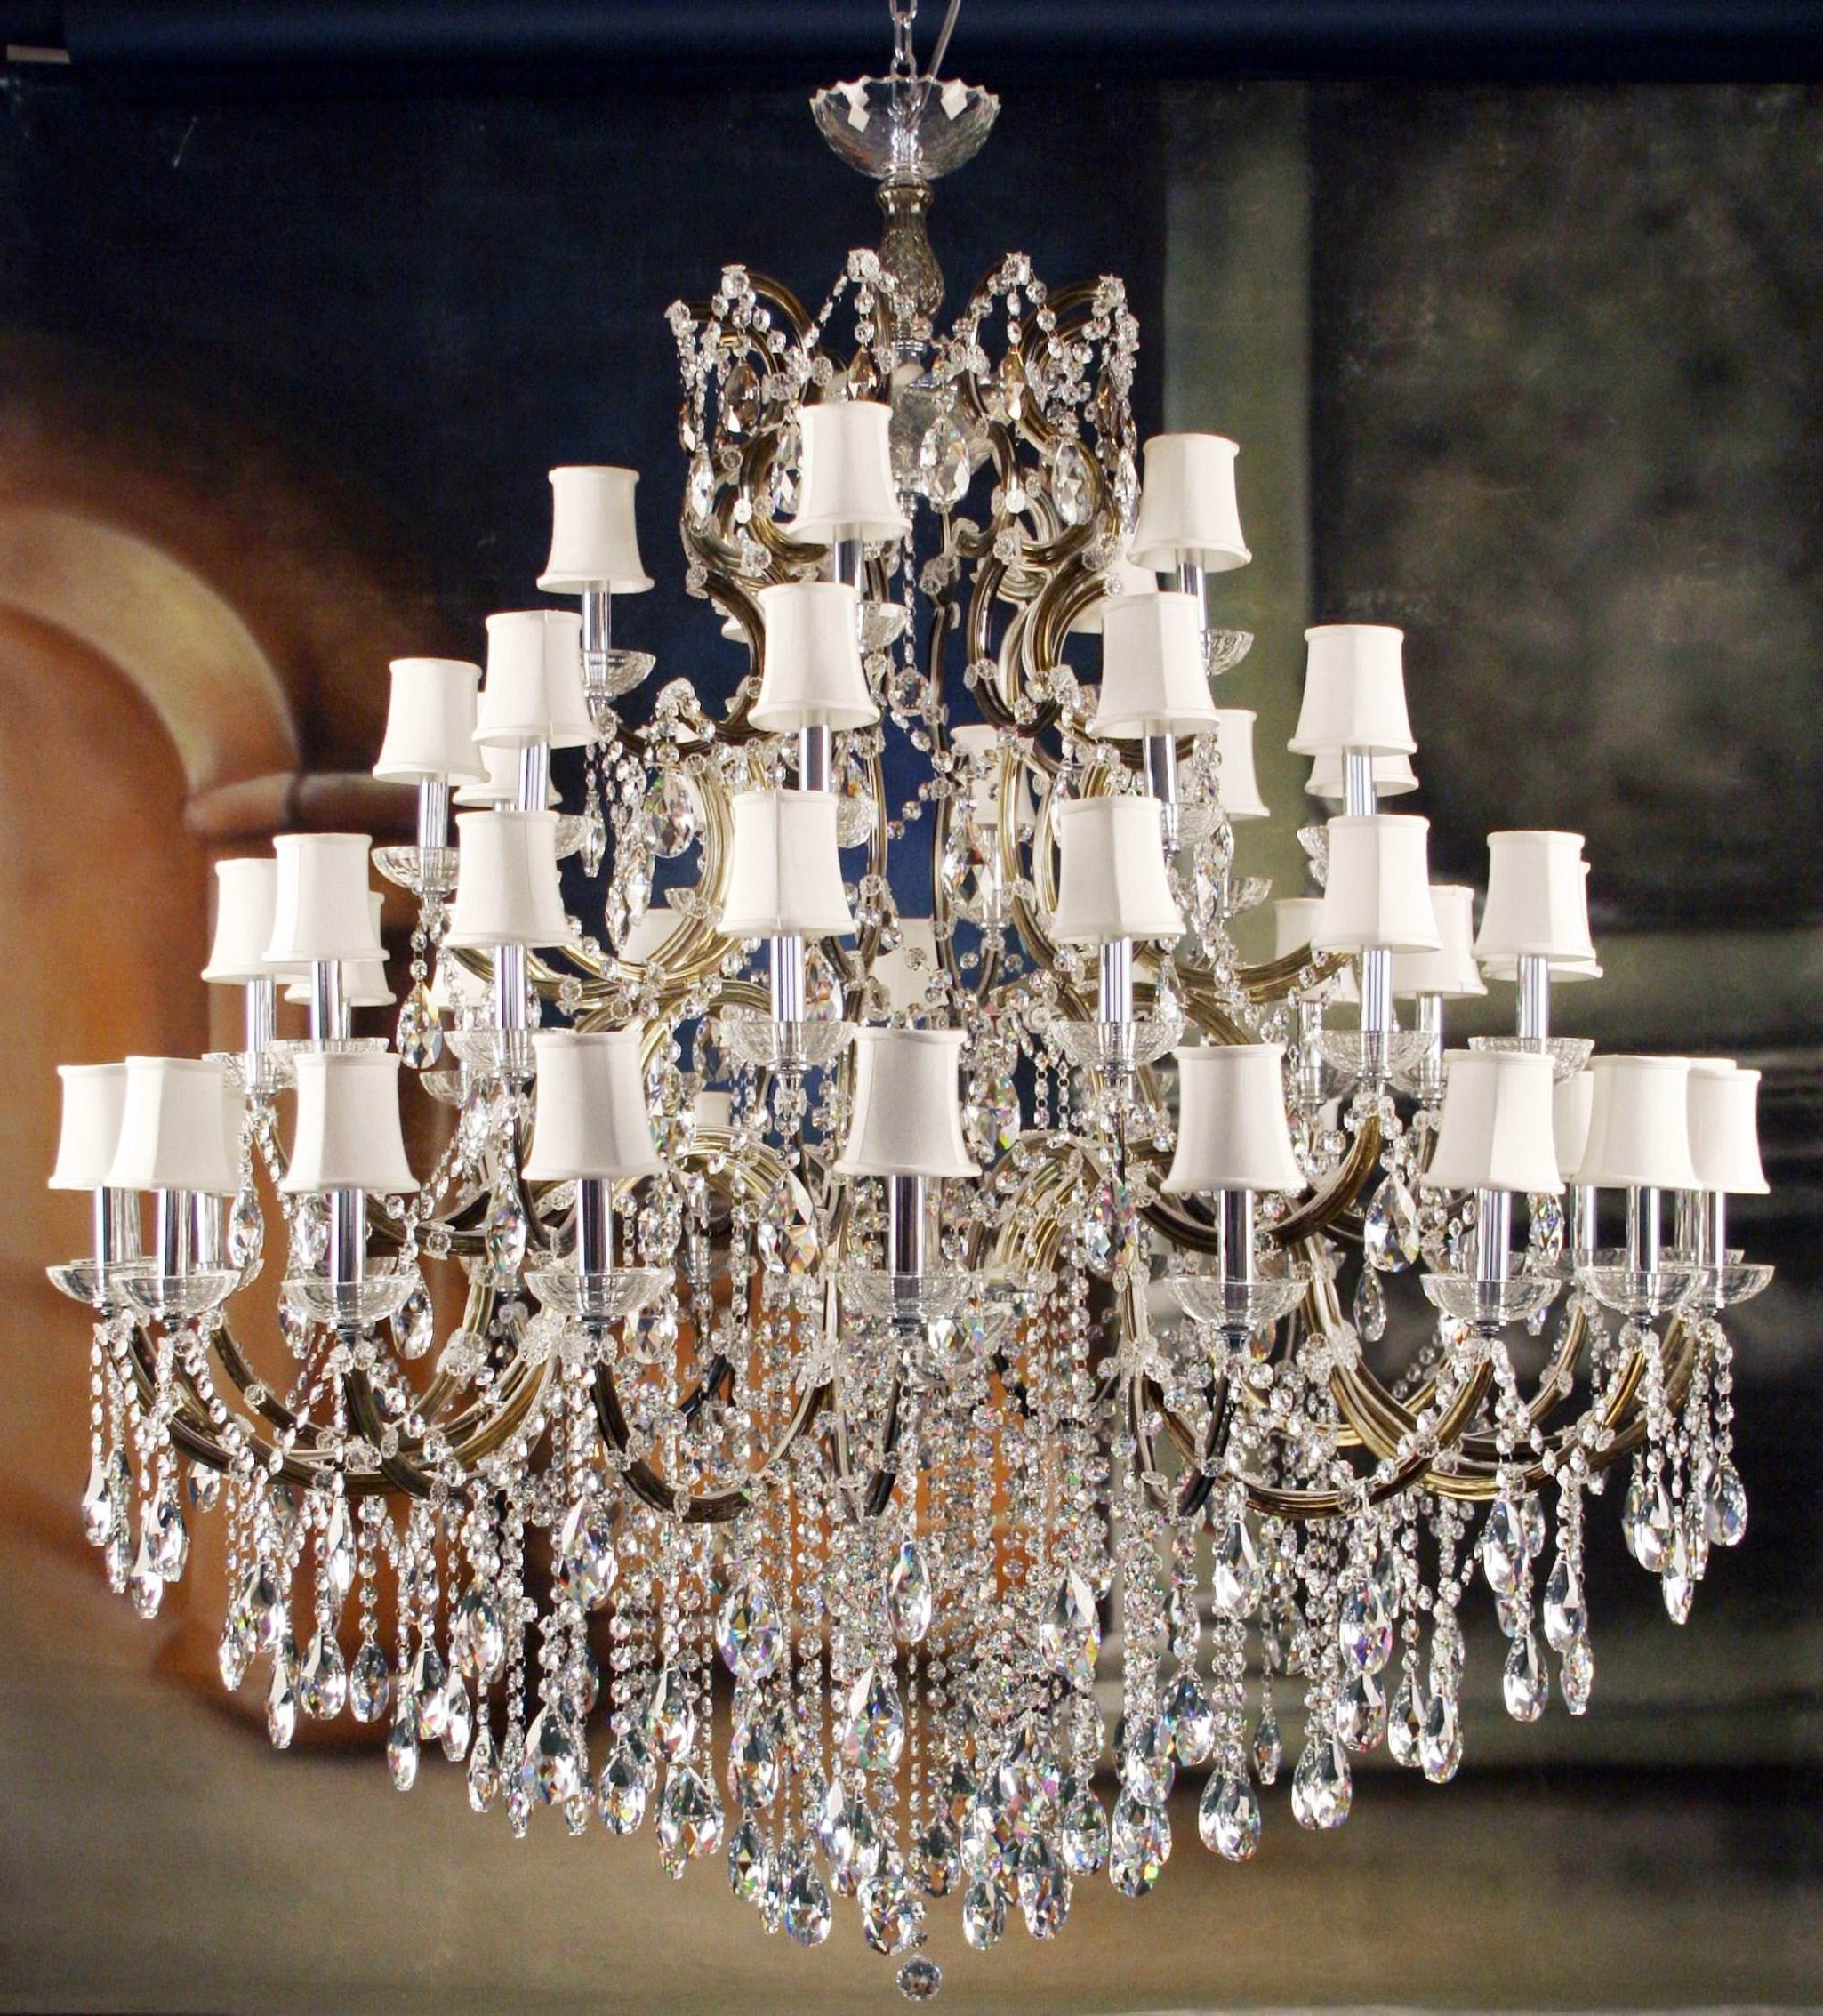 Light : Fancy Living Room High Quality Crystal Chandeliers For Home Inside 2019 Expensive Chandeliers (View 9 of 20)